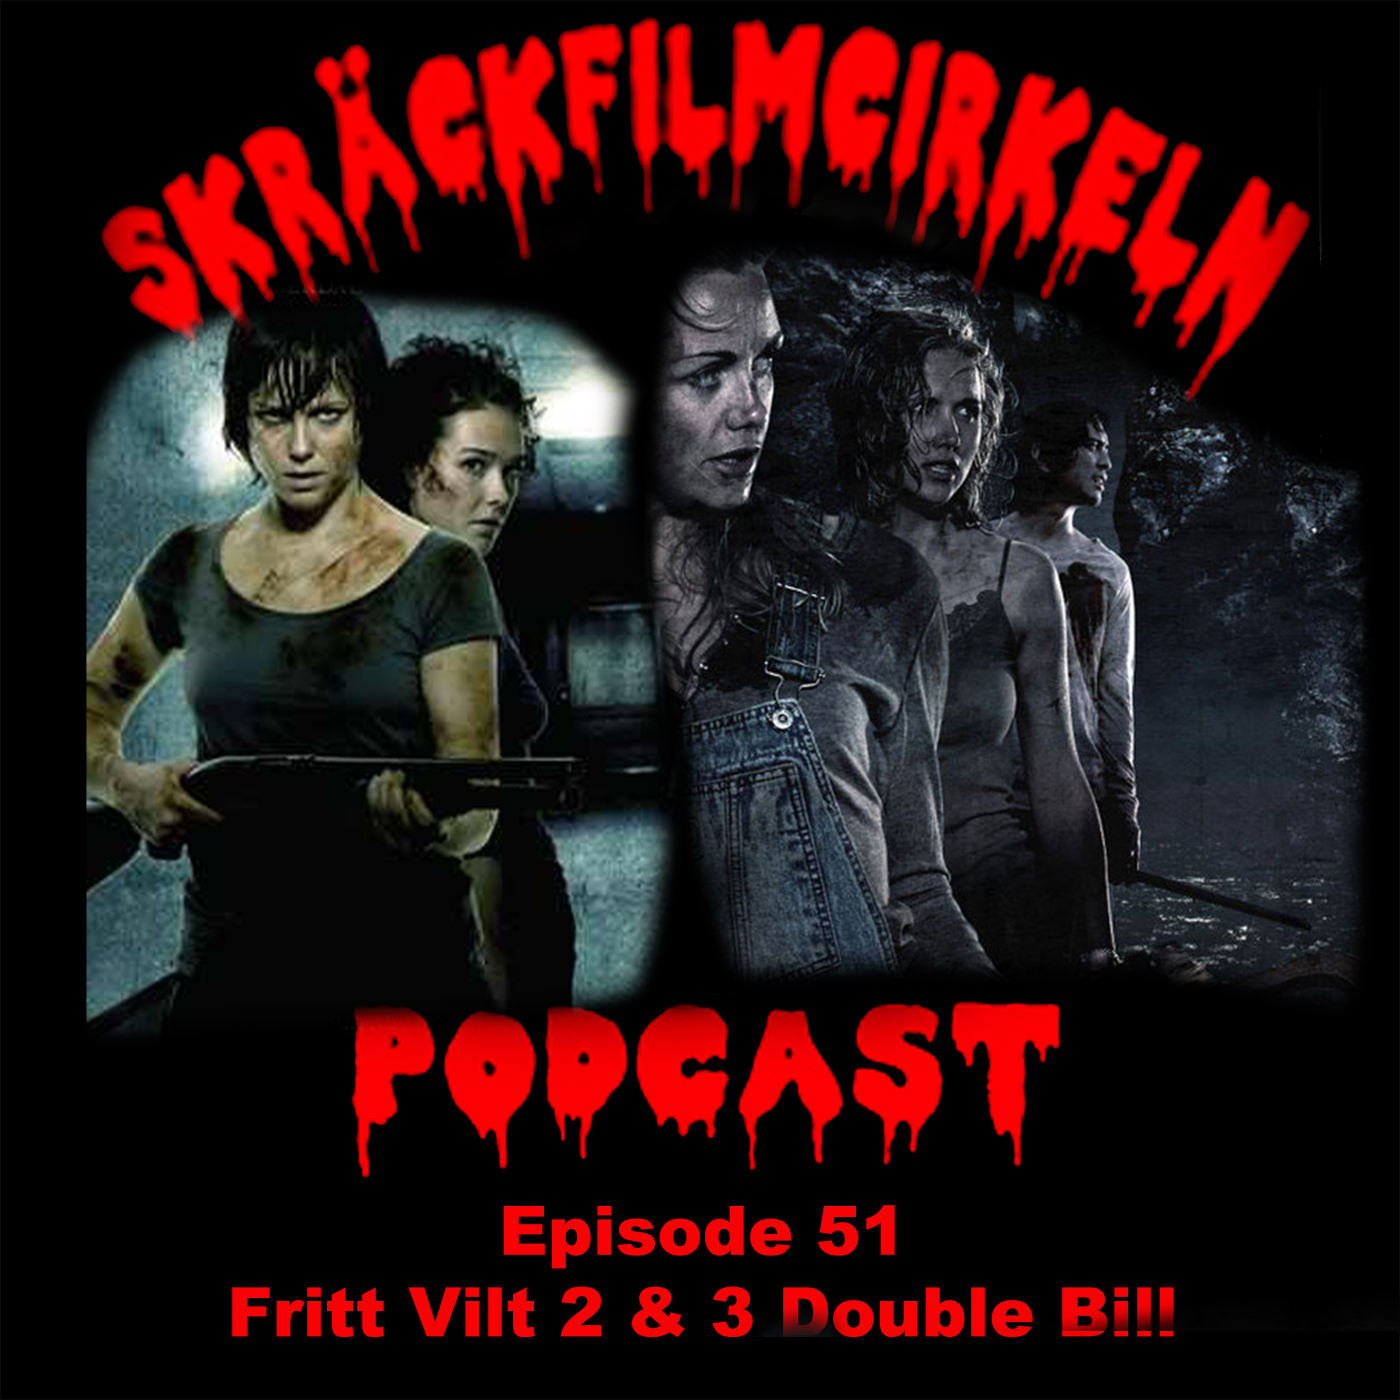 Episode 51 - Fritt Vilt 2 & 3 Double Bill